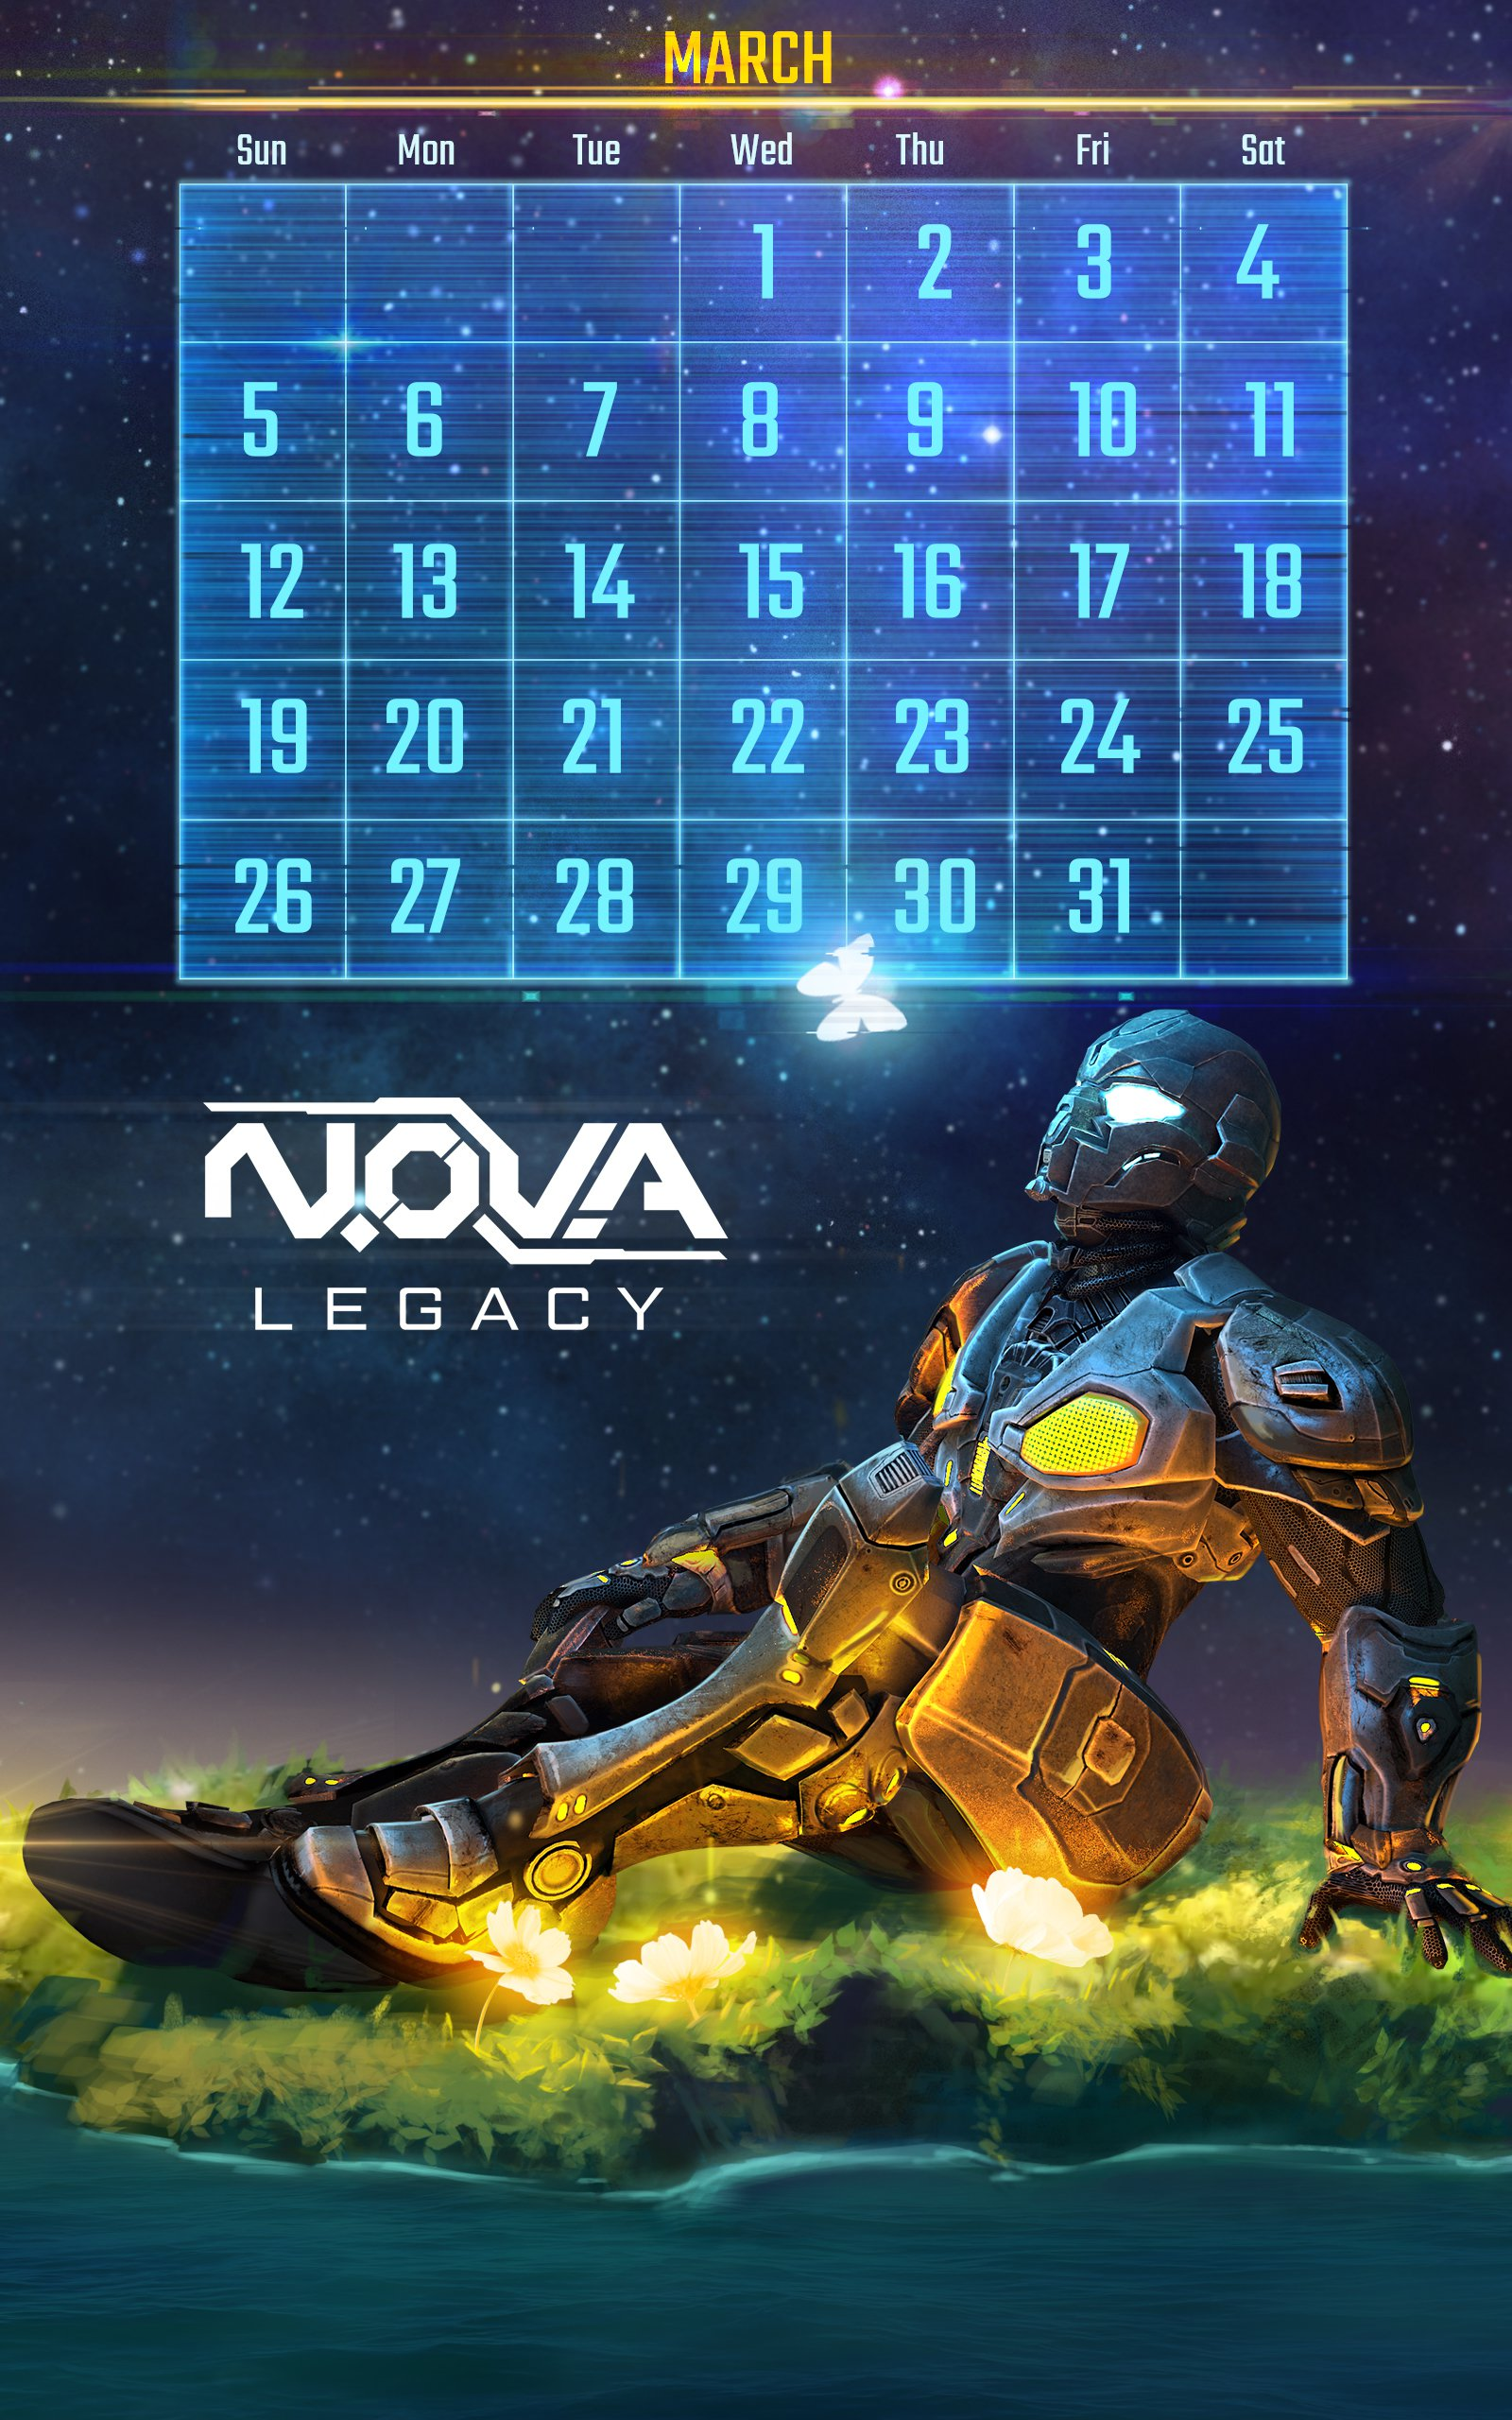 Calendar Wallpaper Automatic Update : Download n o v a legacy calendar and wallpaper march